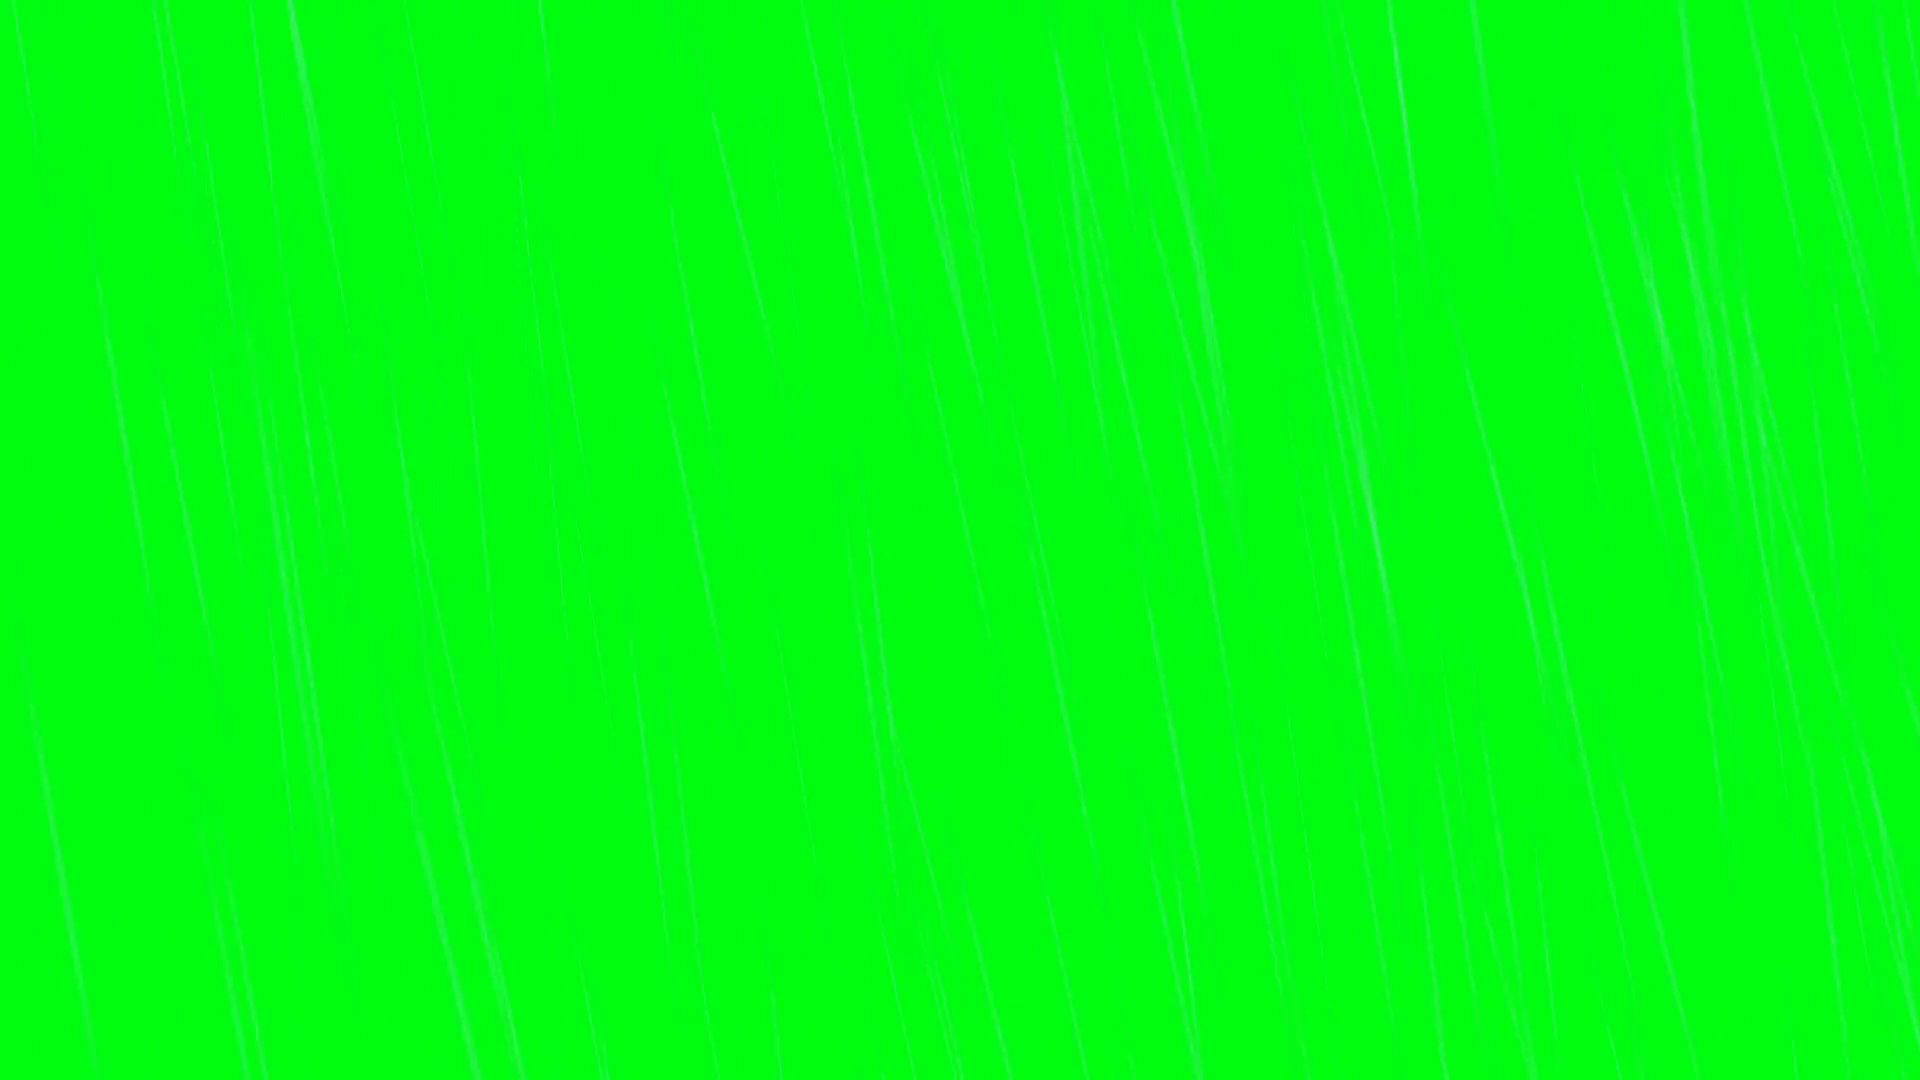 Heavy rain on a green screen Motion Background.